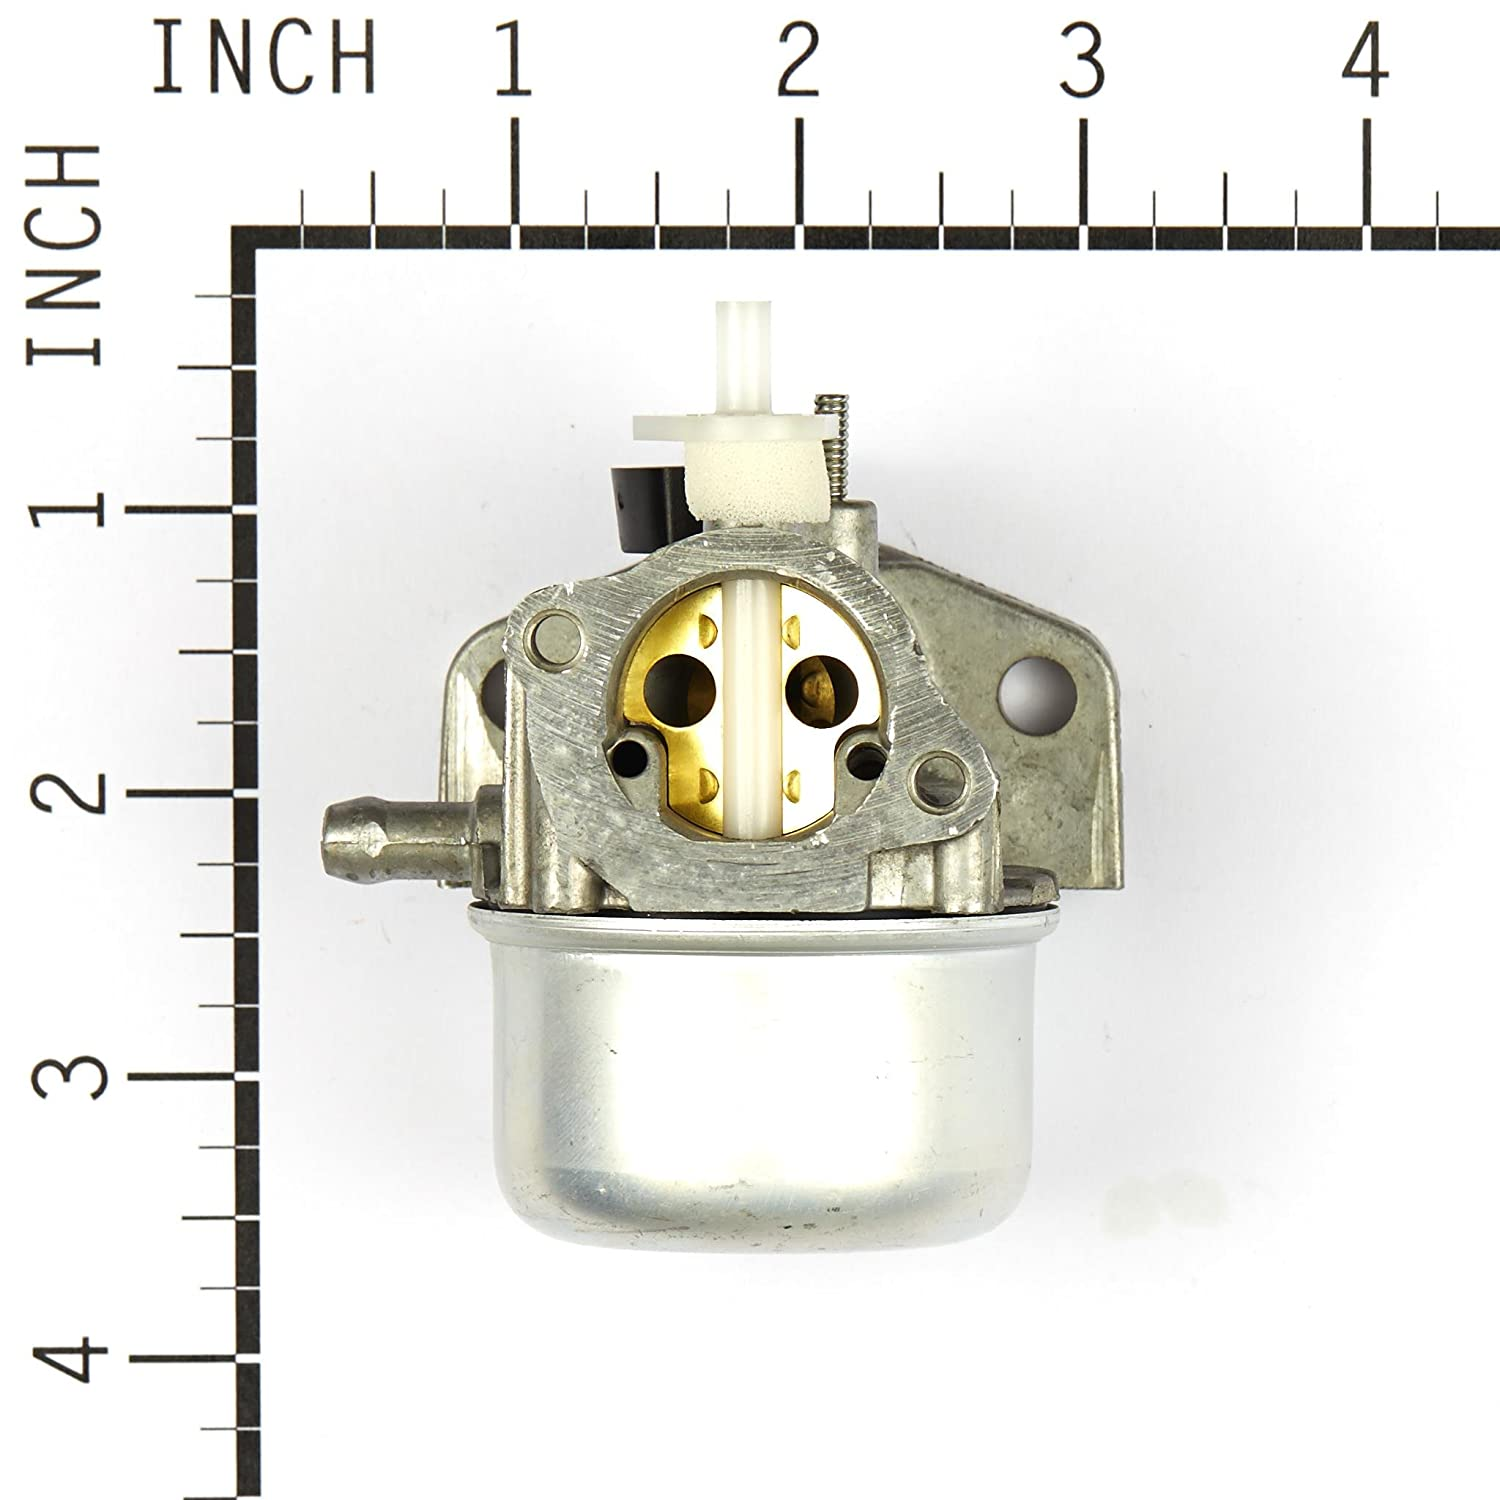 Briggs Stratton 799869 Carburetor Replaces 792253 26 Engine Diagram Lawn And Garden Tool Replacement Parts Outdoor